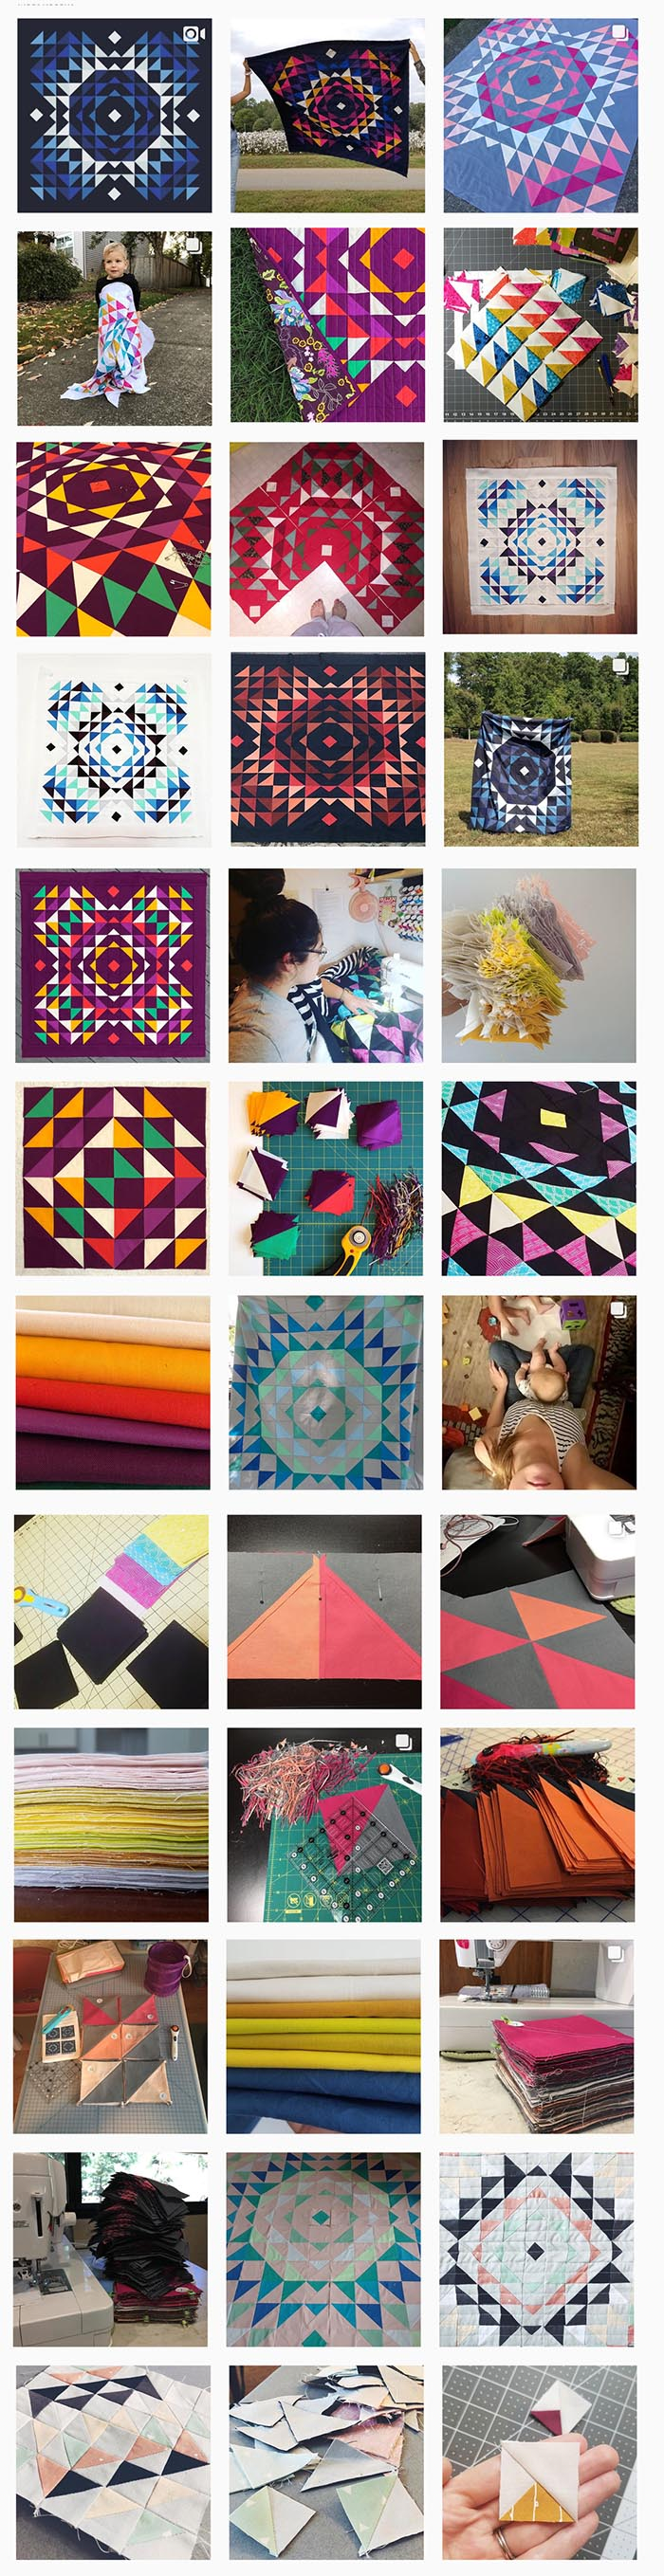 Totality Quilt Instagram Feed